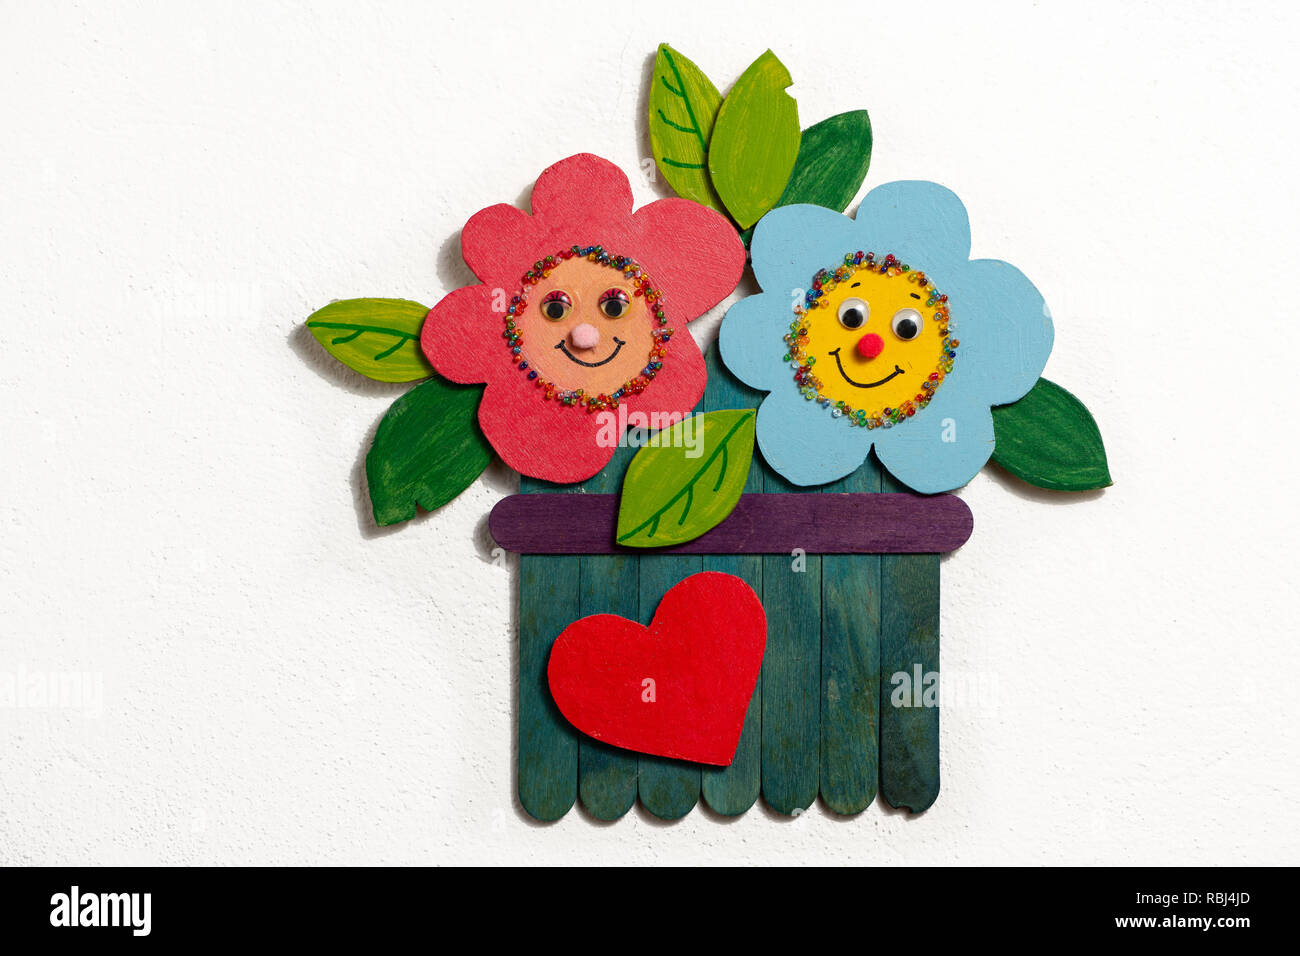 Colorful figure of flowers in a garden made of wood by a child, white background - Stock Image